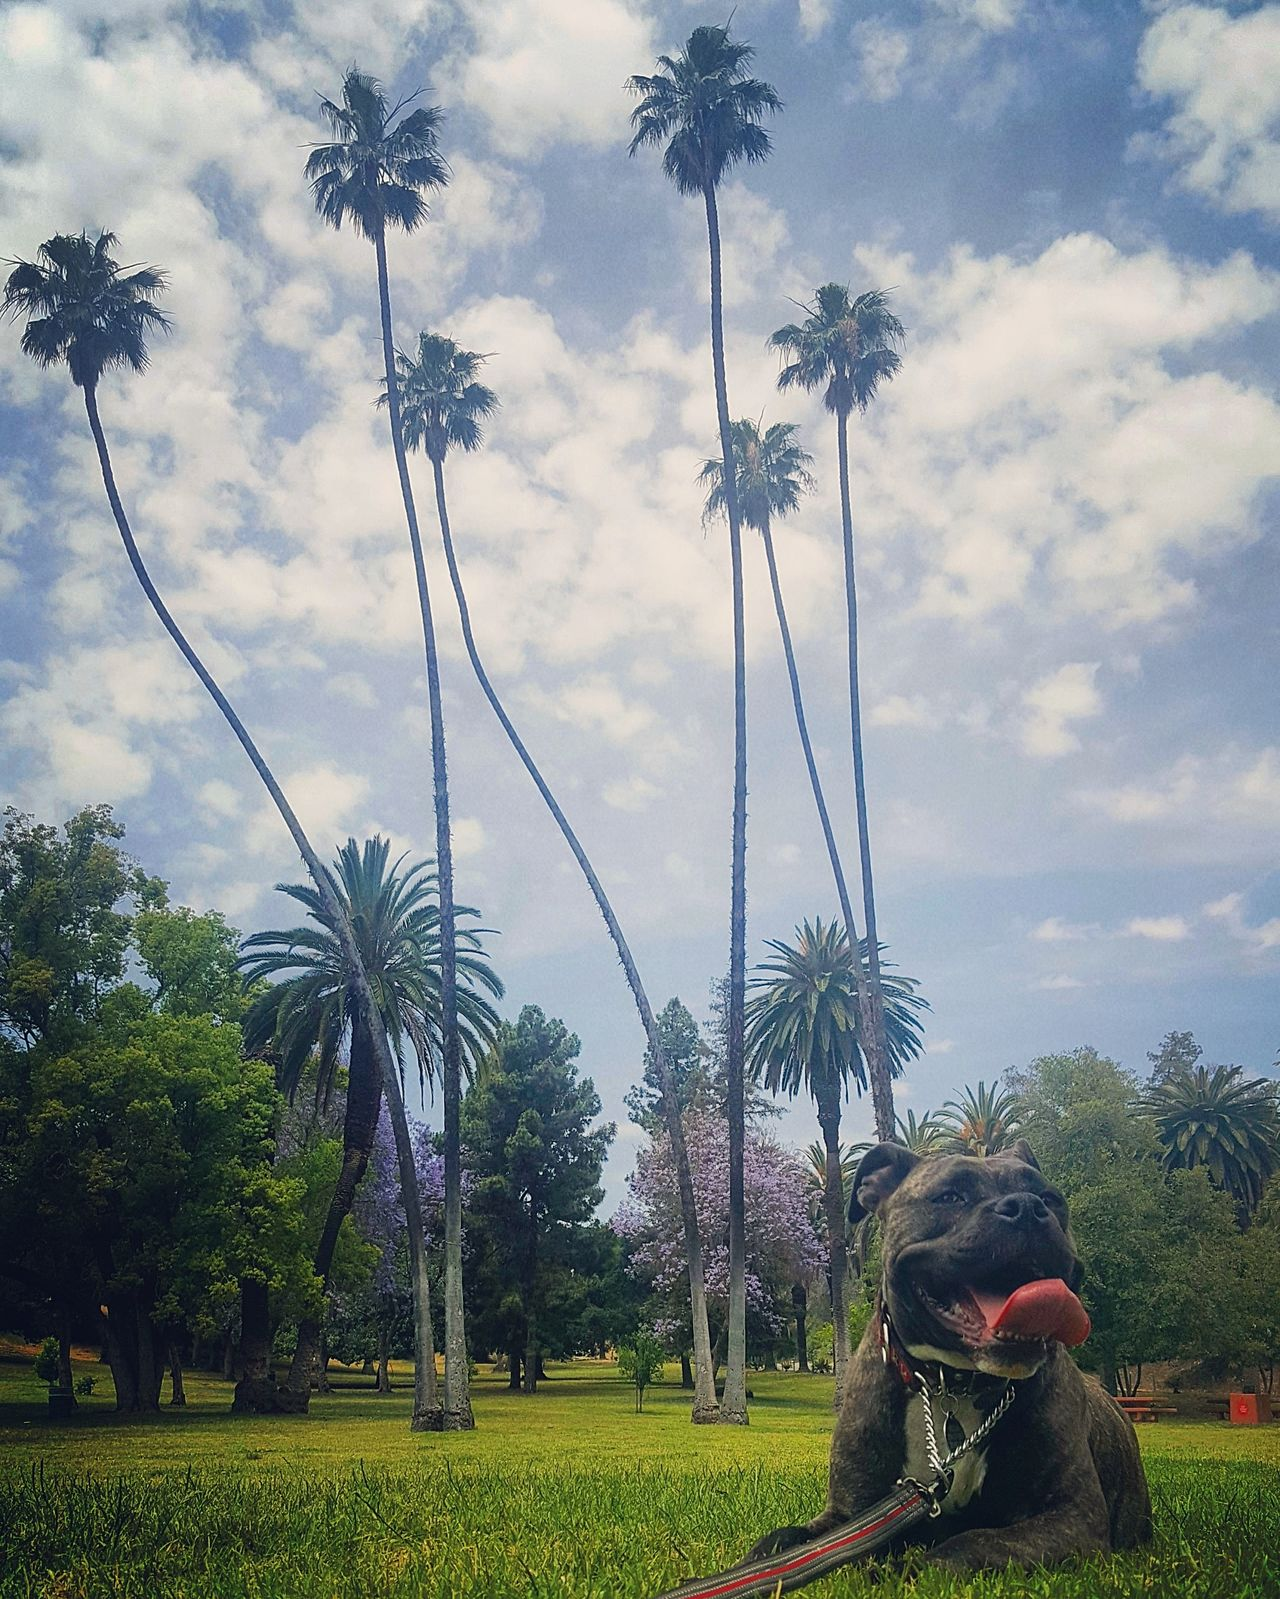 Los Angeles, California Outdoors Nature Dogs Dogslife Dog Palm Tree Pet Photography  Pets No People Rescuedog Elysian Park Mutts AmericanBulldog